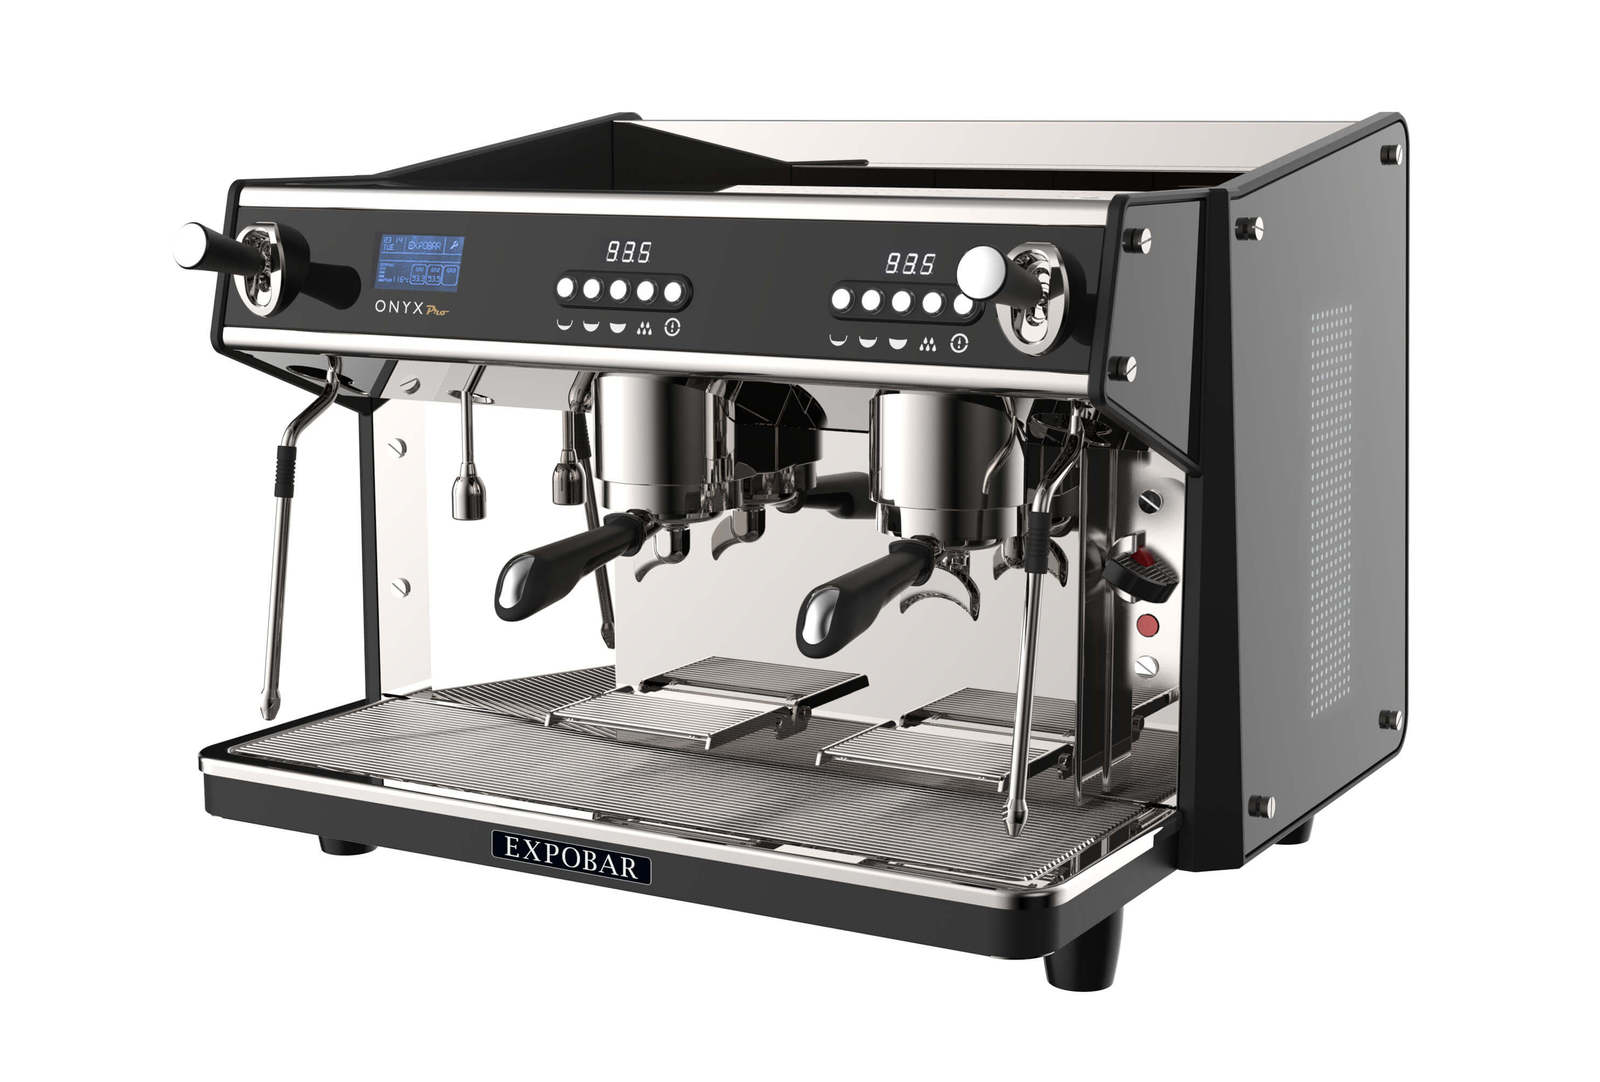 Expobar Onyx Pro 2 group espresso machine, side view in black and silver